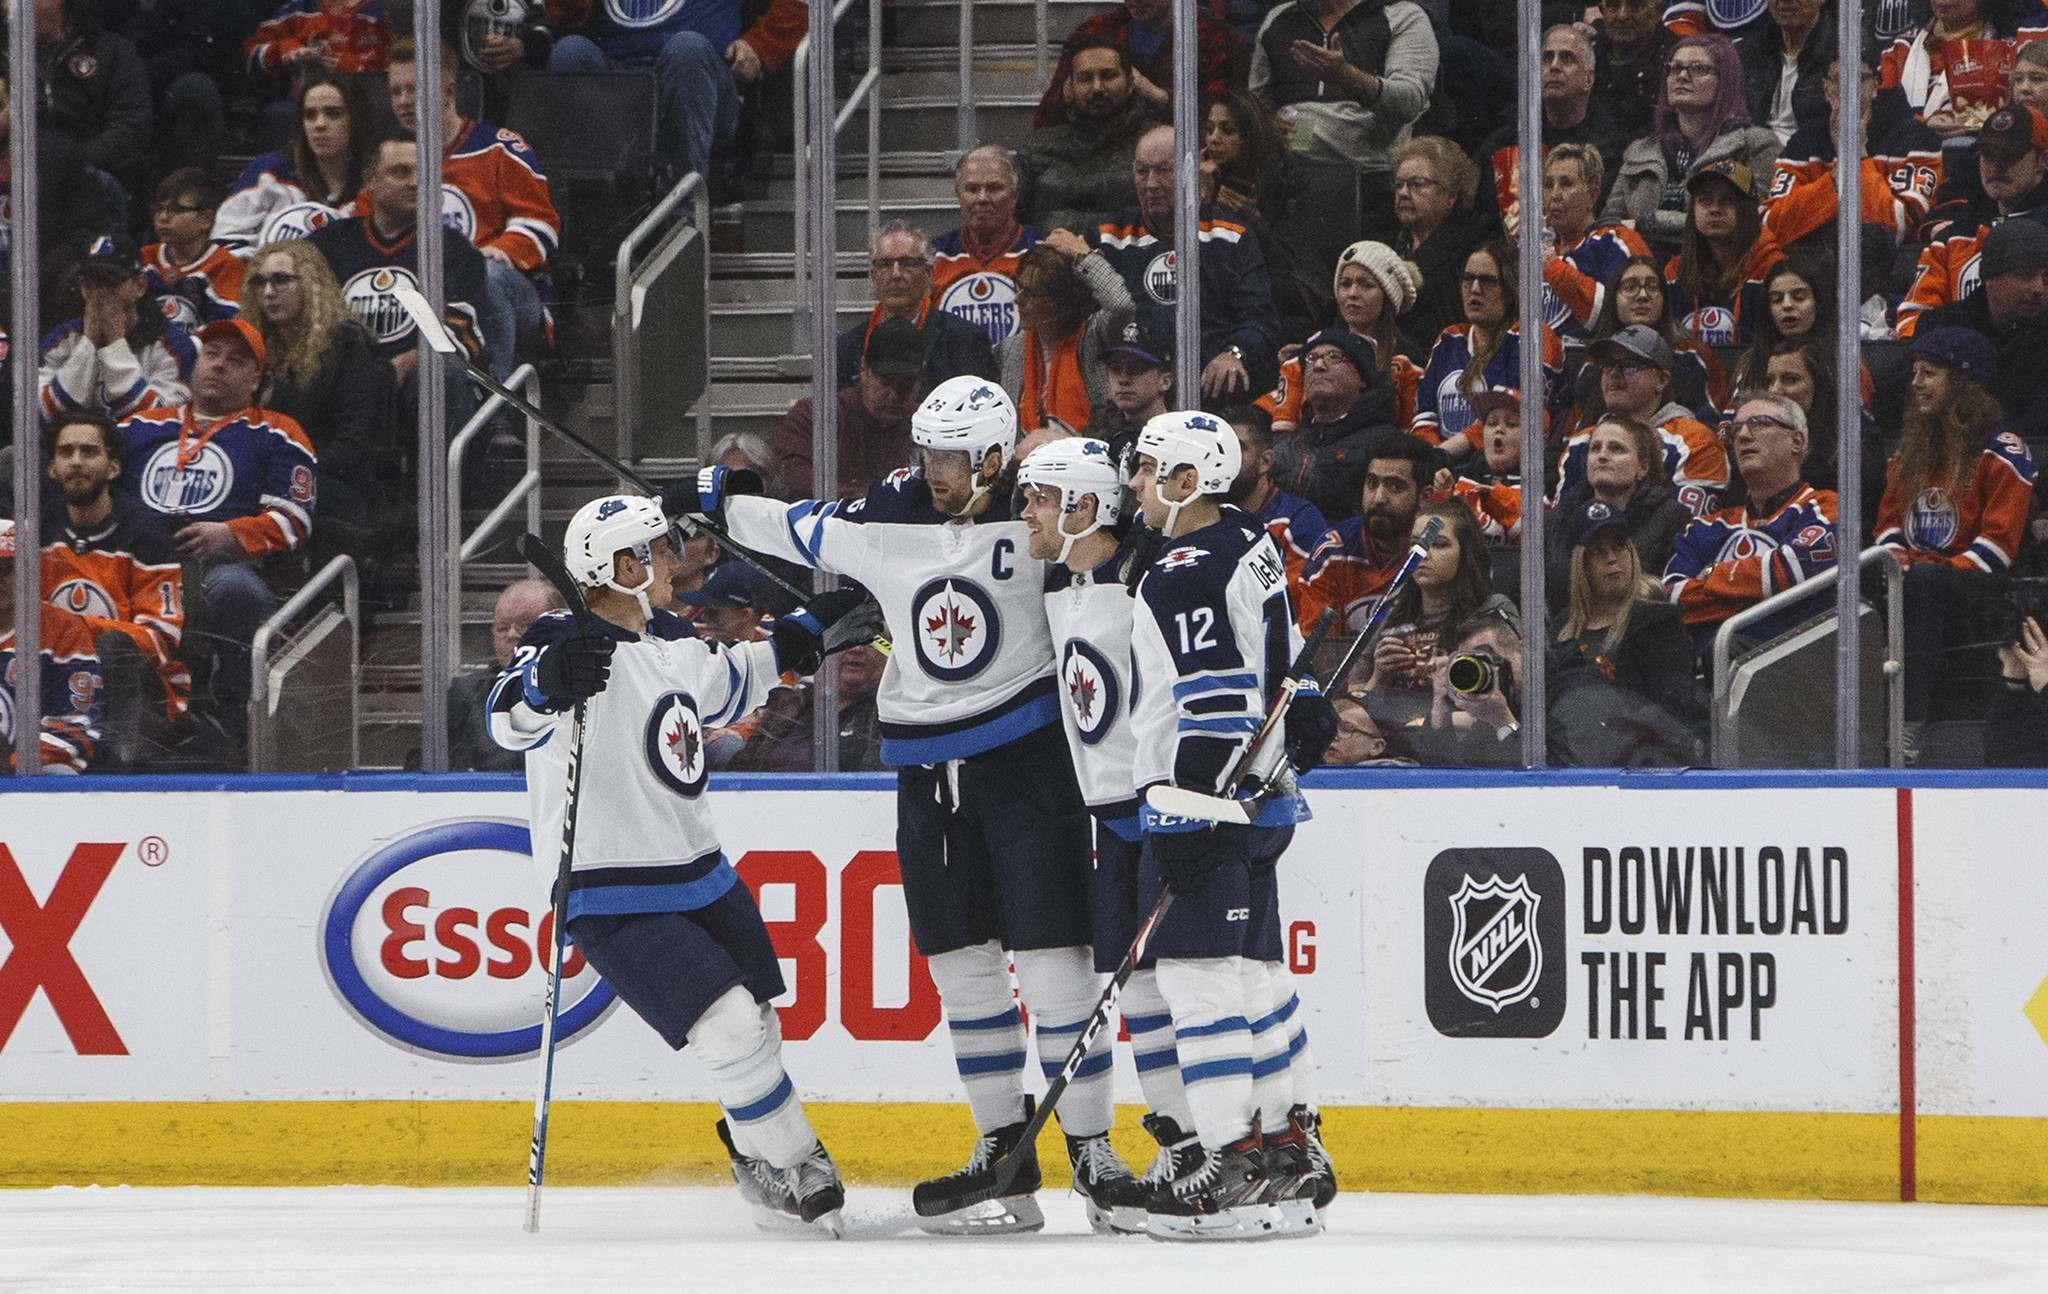 THE CANADIAN PRESS/Jason Franson</p><p>Winnipeg Jets celebrate a goal against the Edmonton Oilers during second period NHL action in Edmonton on Wednesday.</p>